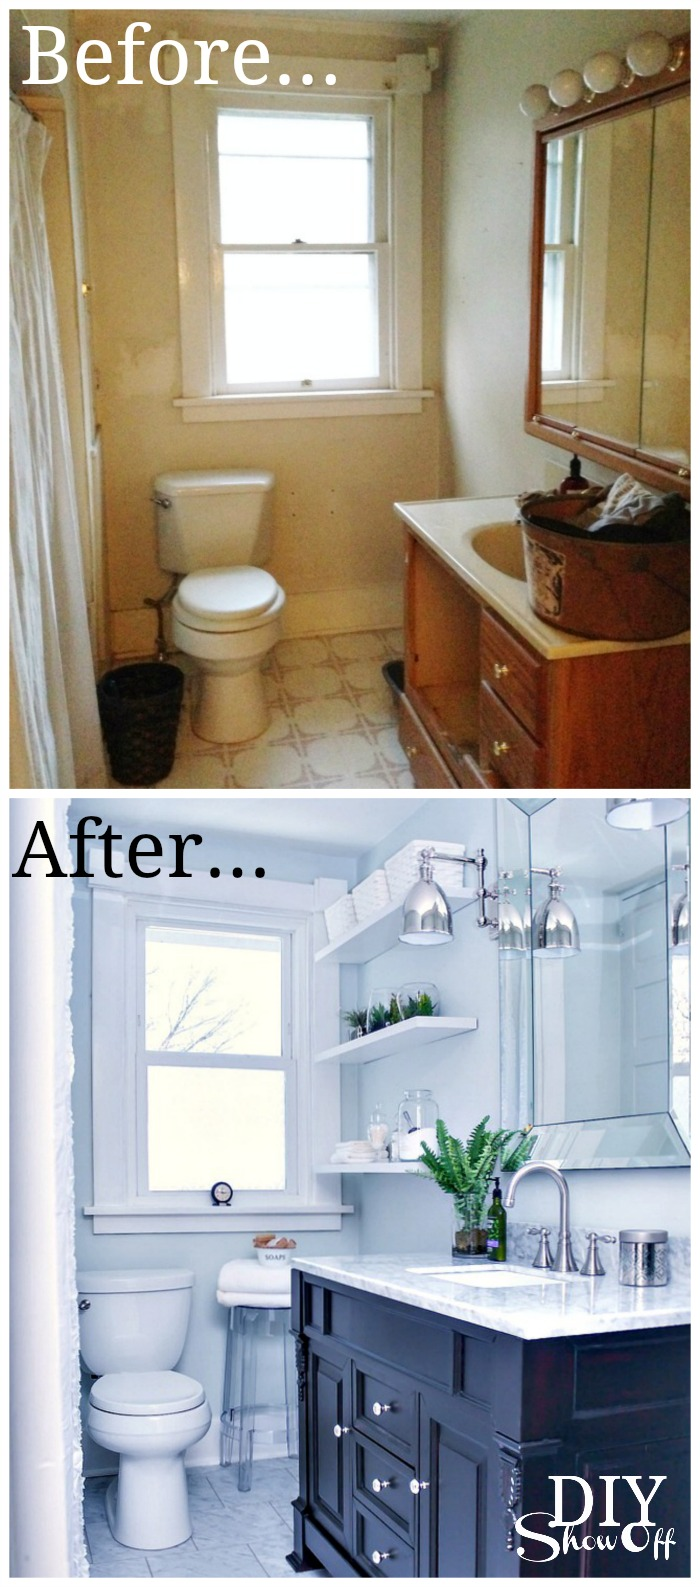 Incredible Bathroom Before And After Diy Show Off Diy Decorating Best Image Libraries Thycampuscom